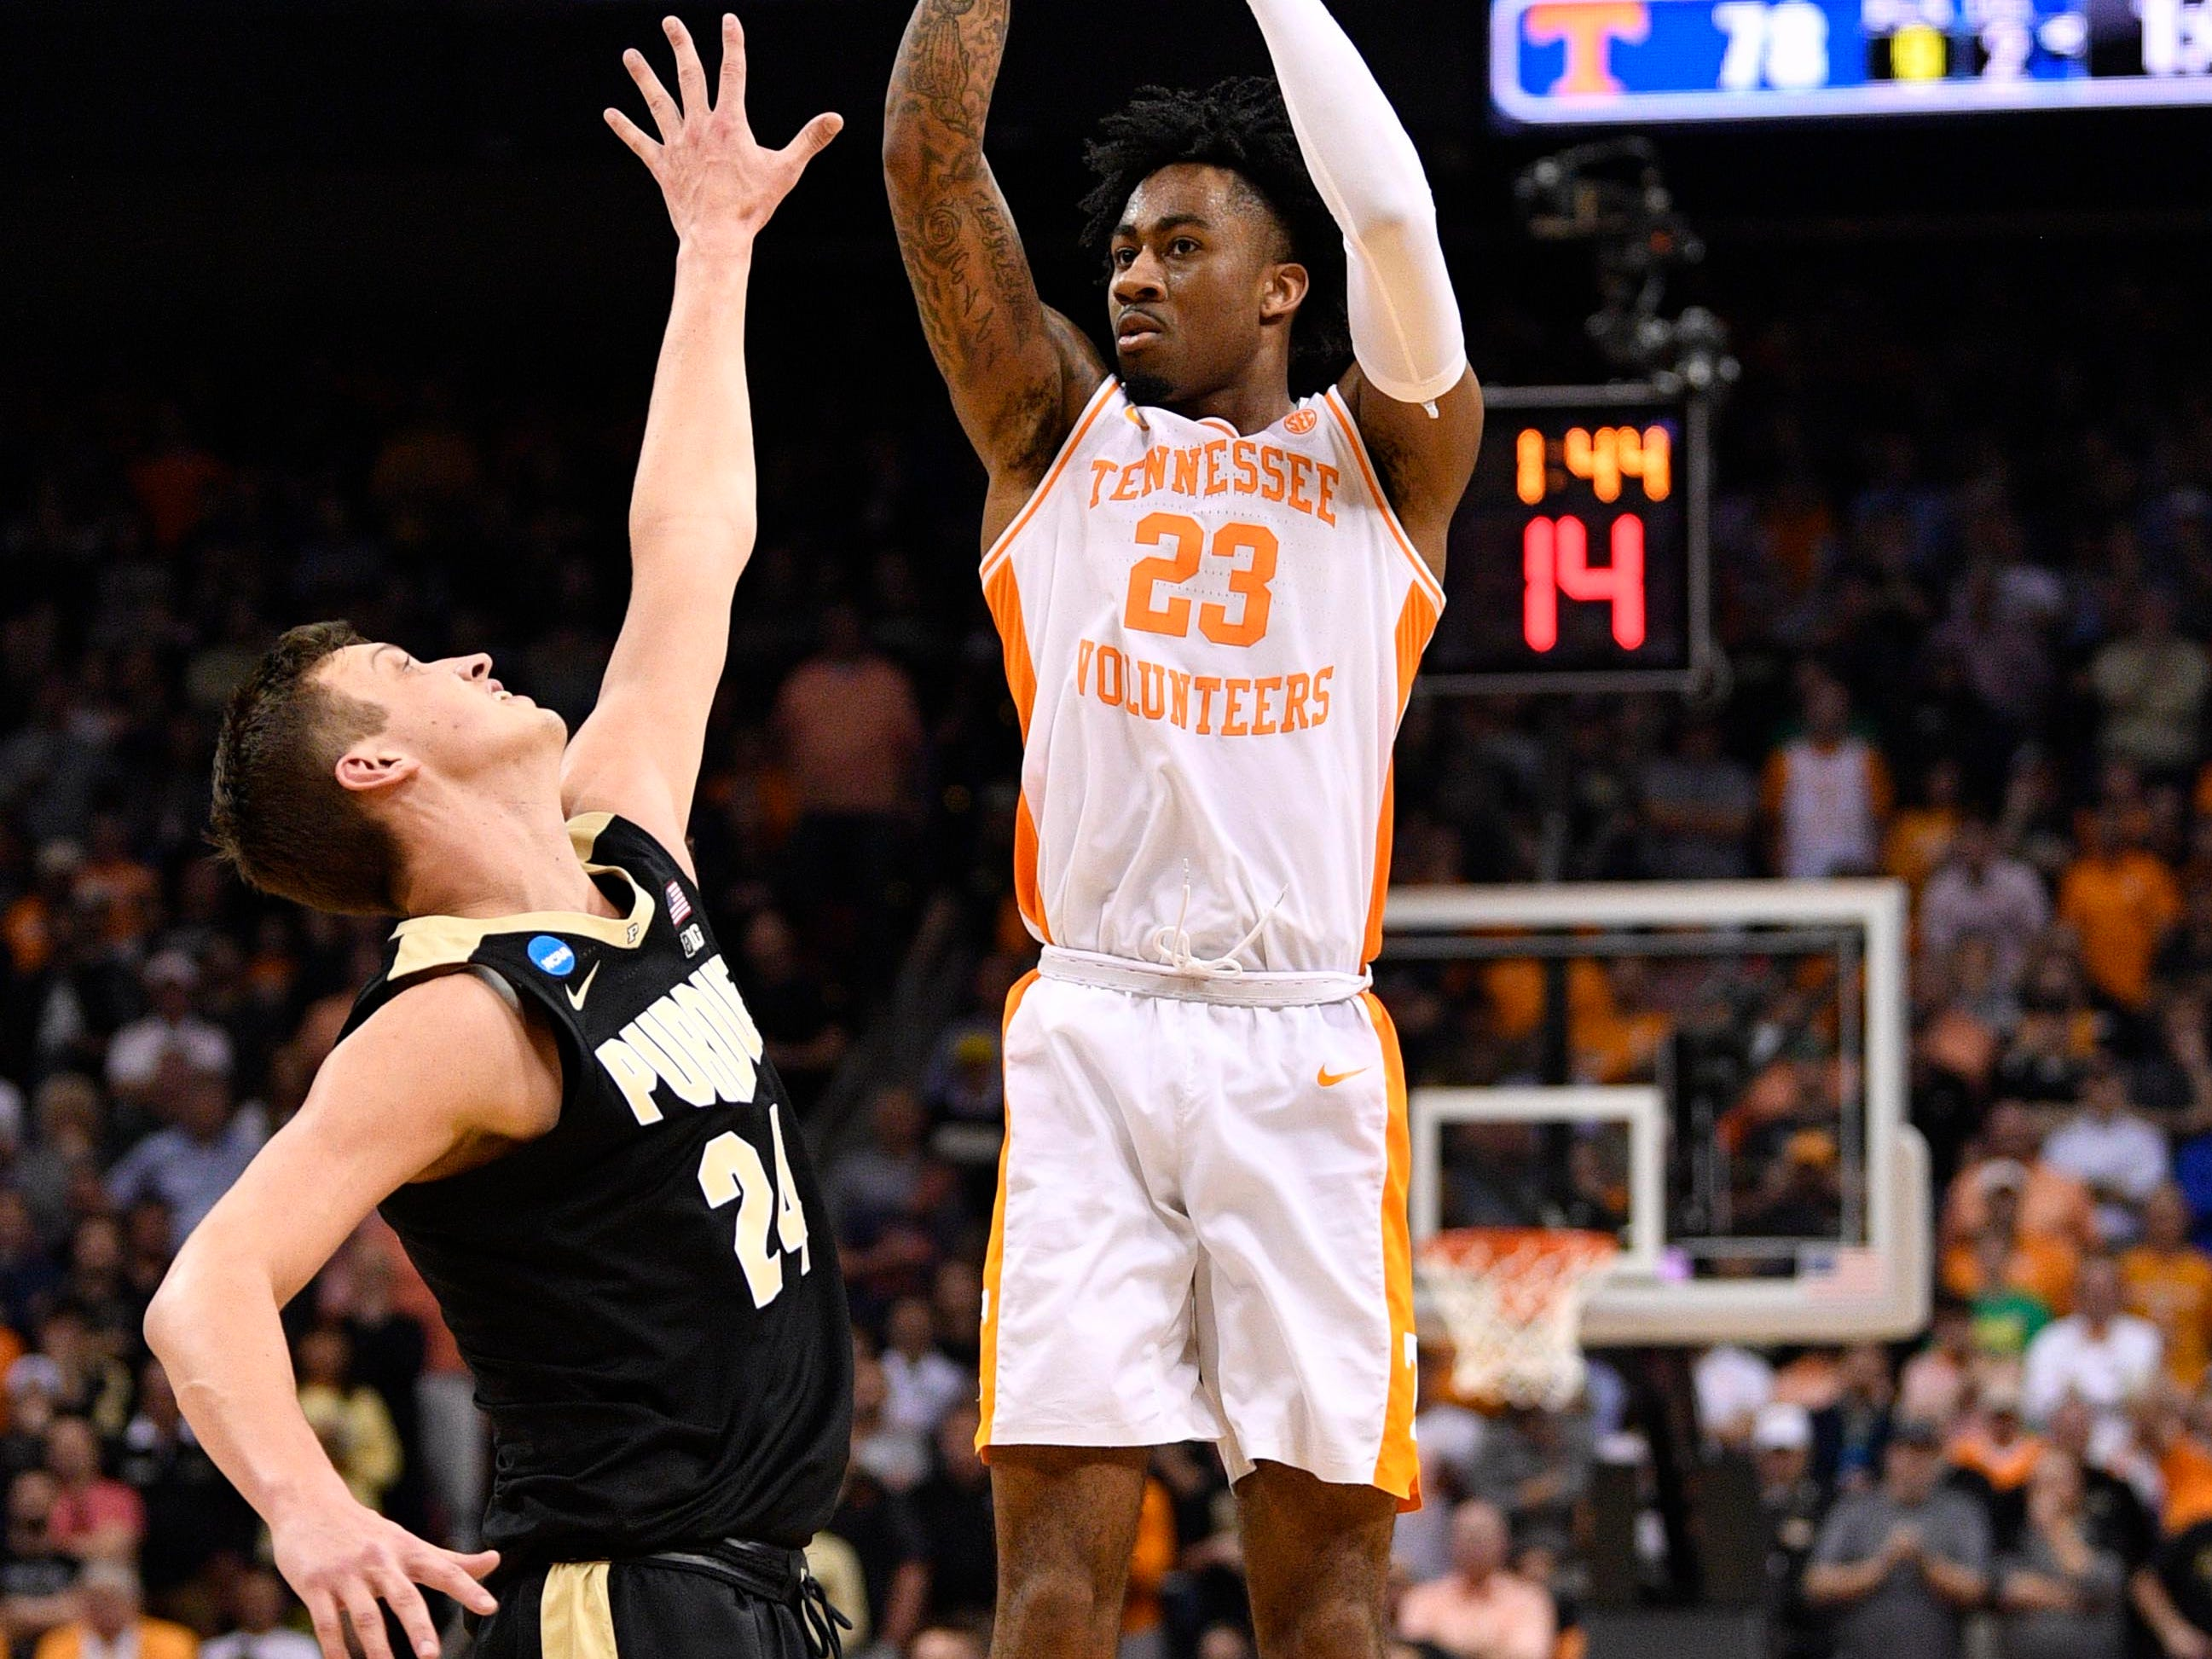 Mar 28, 2019; Louisville, KY, United States; Tennessee Volunteers guard Jordan Bowden (23) shoots as Purdue Boilermakers forward Grady Eifert (24) defends during the second half in the semifinals of the south regional of the 2019 NCAA Tournament at KFC Yum Center. Mandatory Credit: Jamie Rhodes-USA TODAY Sports